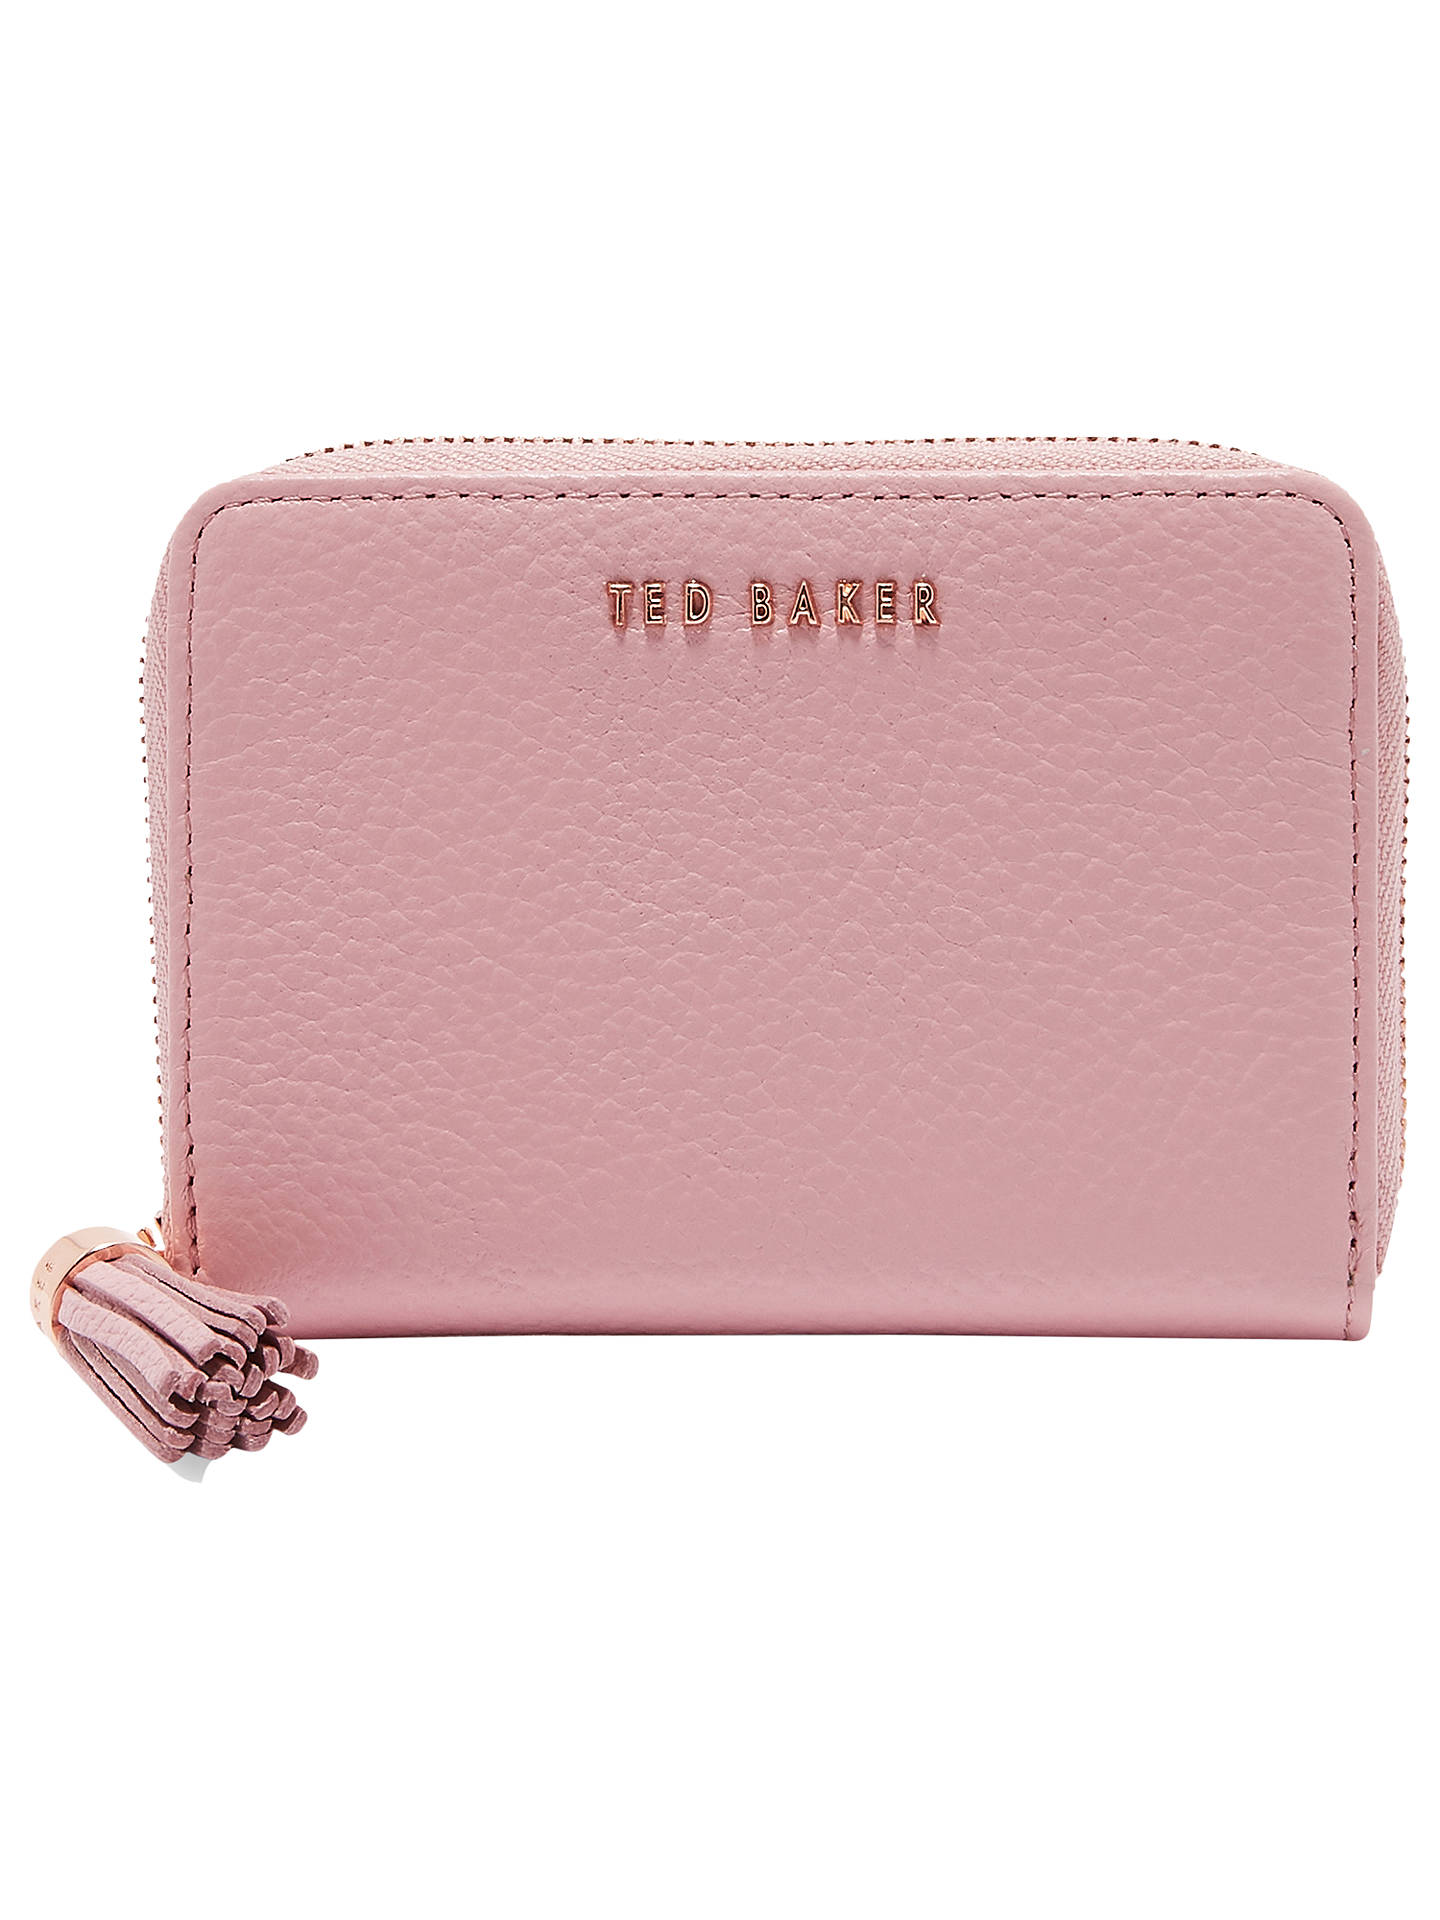 387ee9182 Ted Baker Sabel Small Leather Zip Around Matinee Purse at John Lewis ...